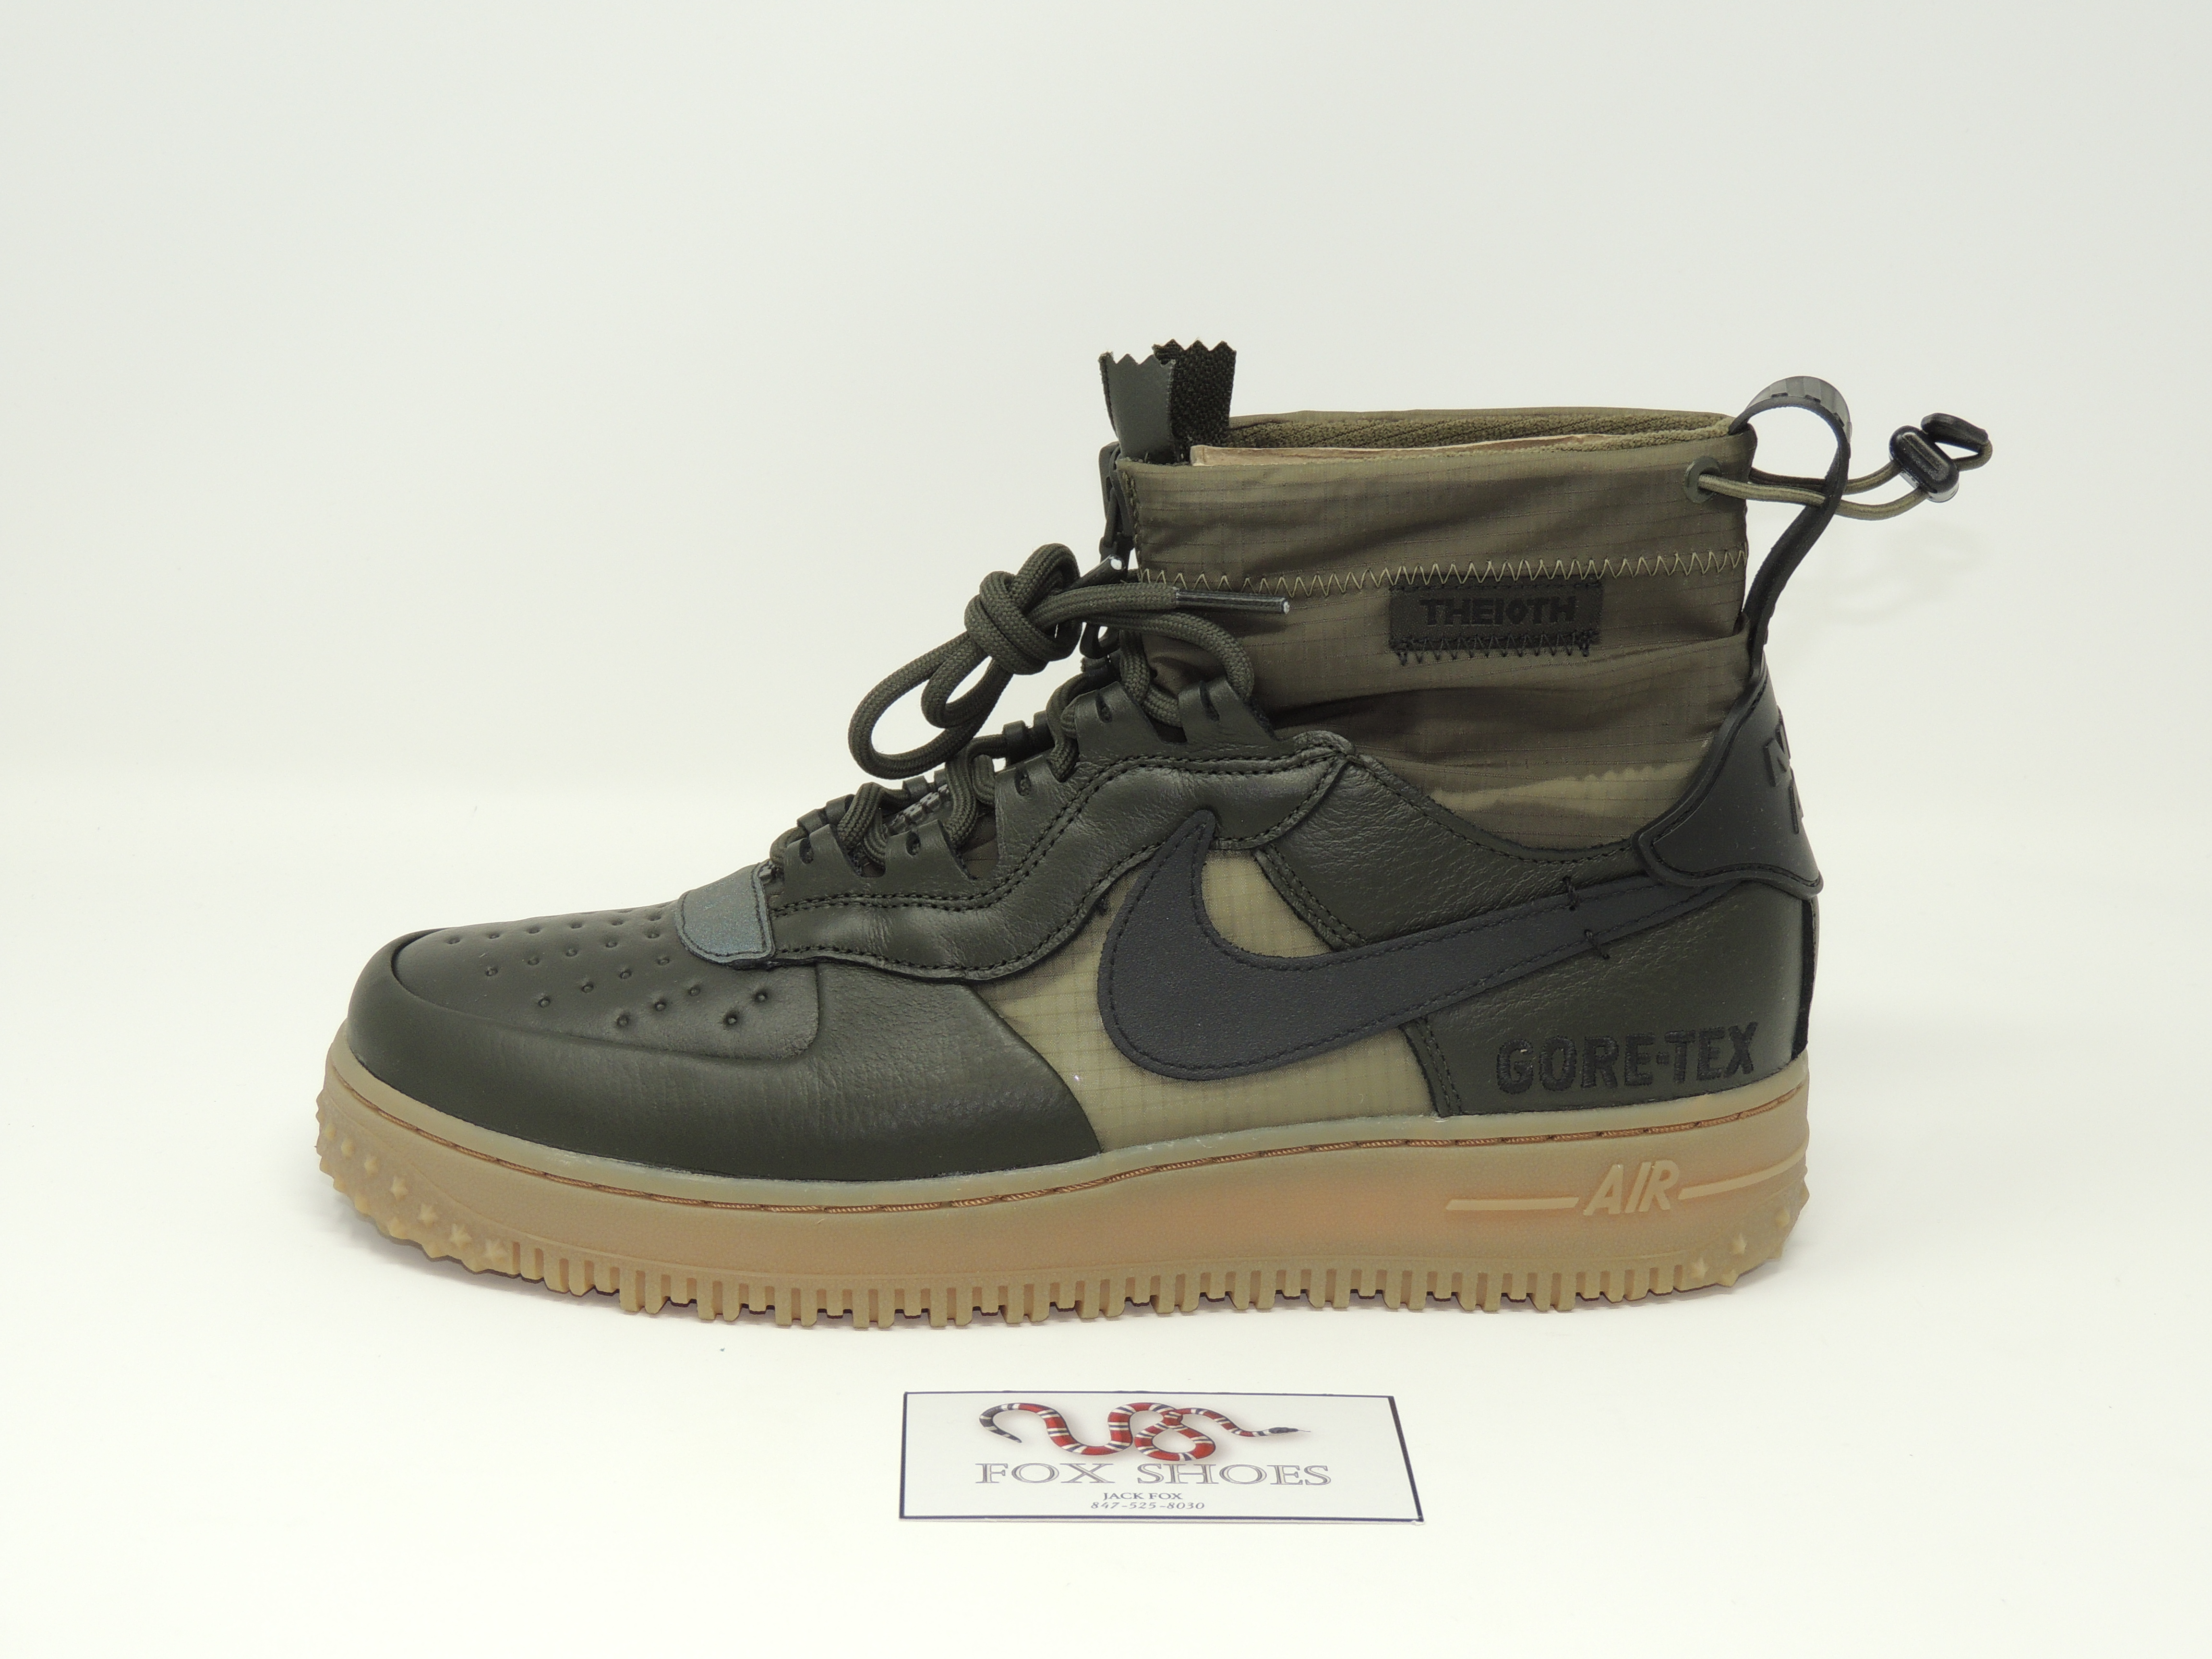 Nike Air Force 1 Winter Gore tex Sequoia Size 9.5 NEW